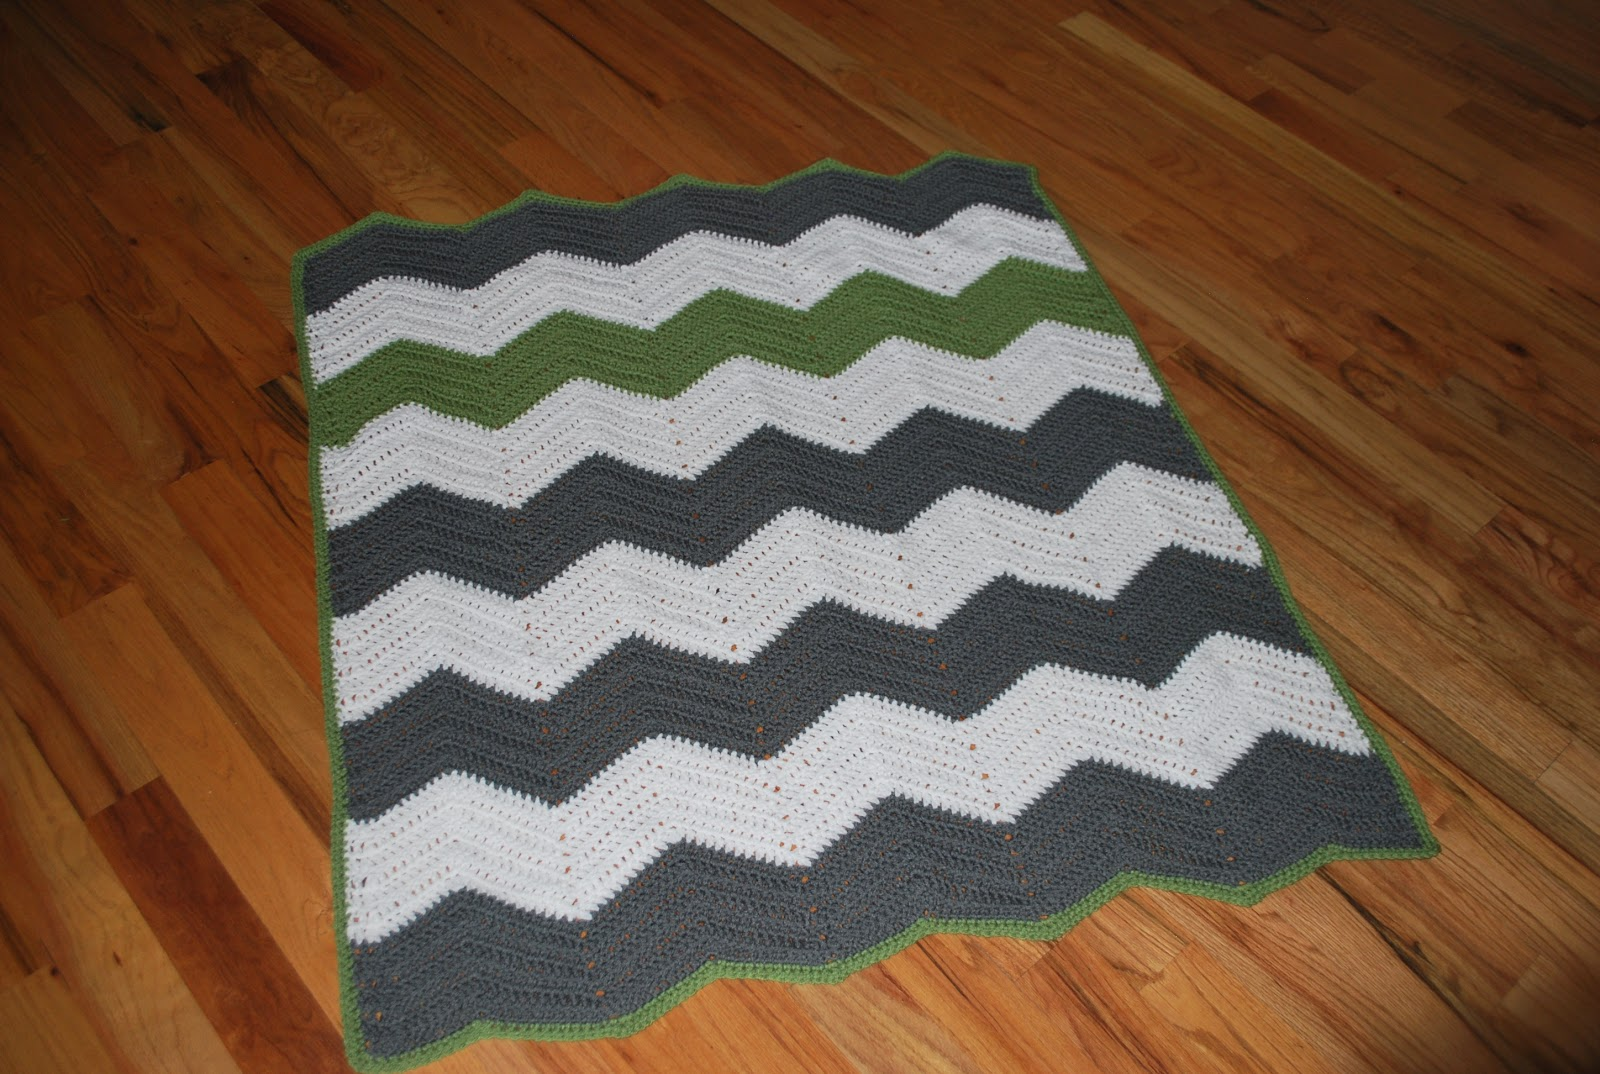 Free Crochet Pattern Baby Blanket Chevron : Creative Highs: Crochet Chevron Blanket Free Pattern